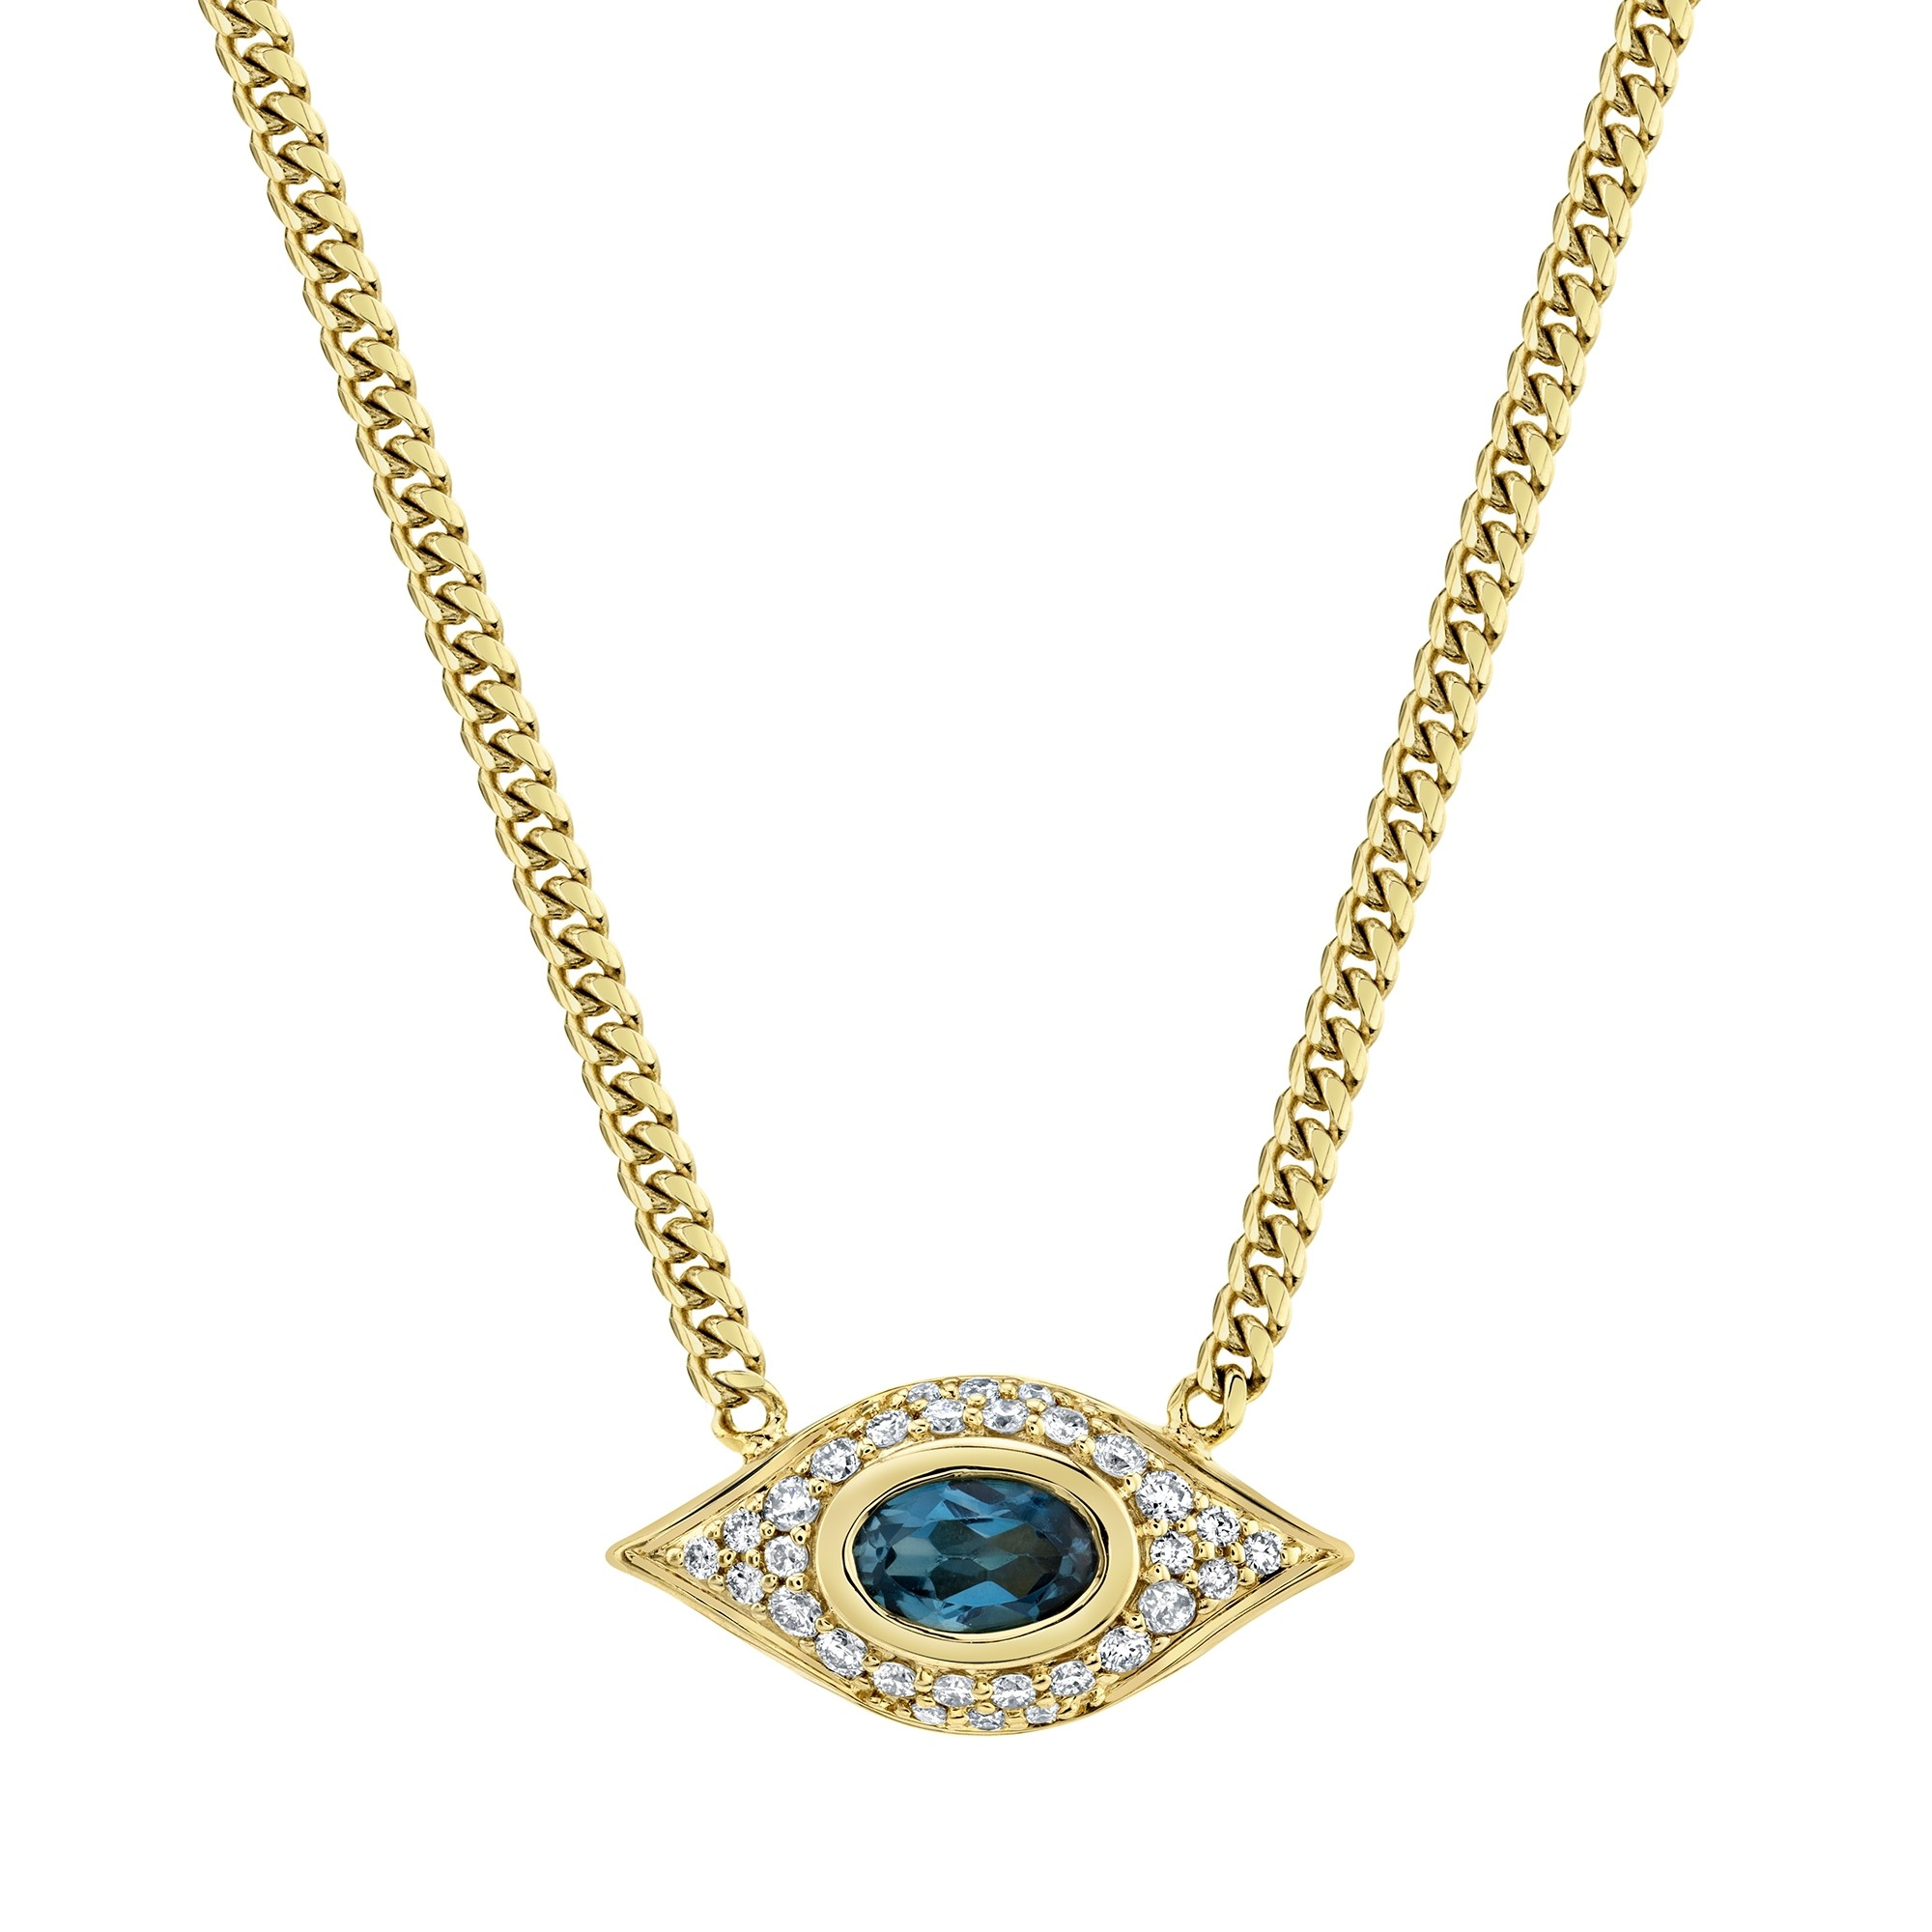 14k Yellow Gold Diamond Oval Blue Topaz Evil Eye Necklace